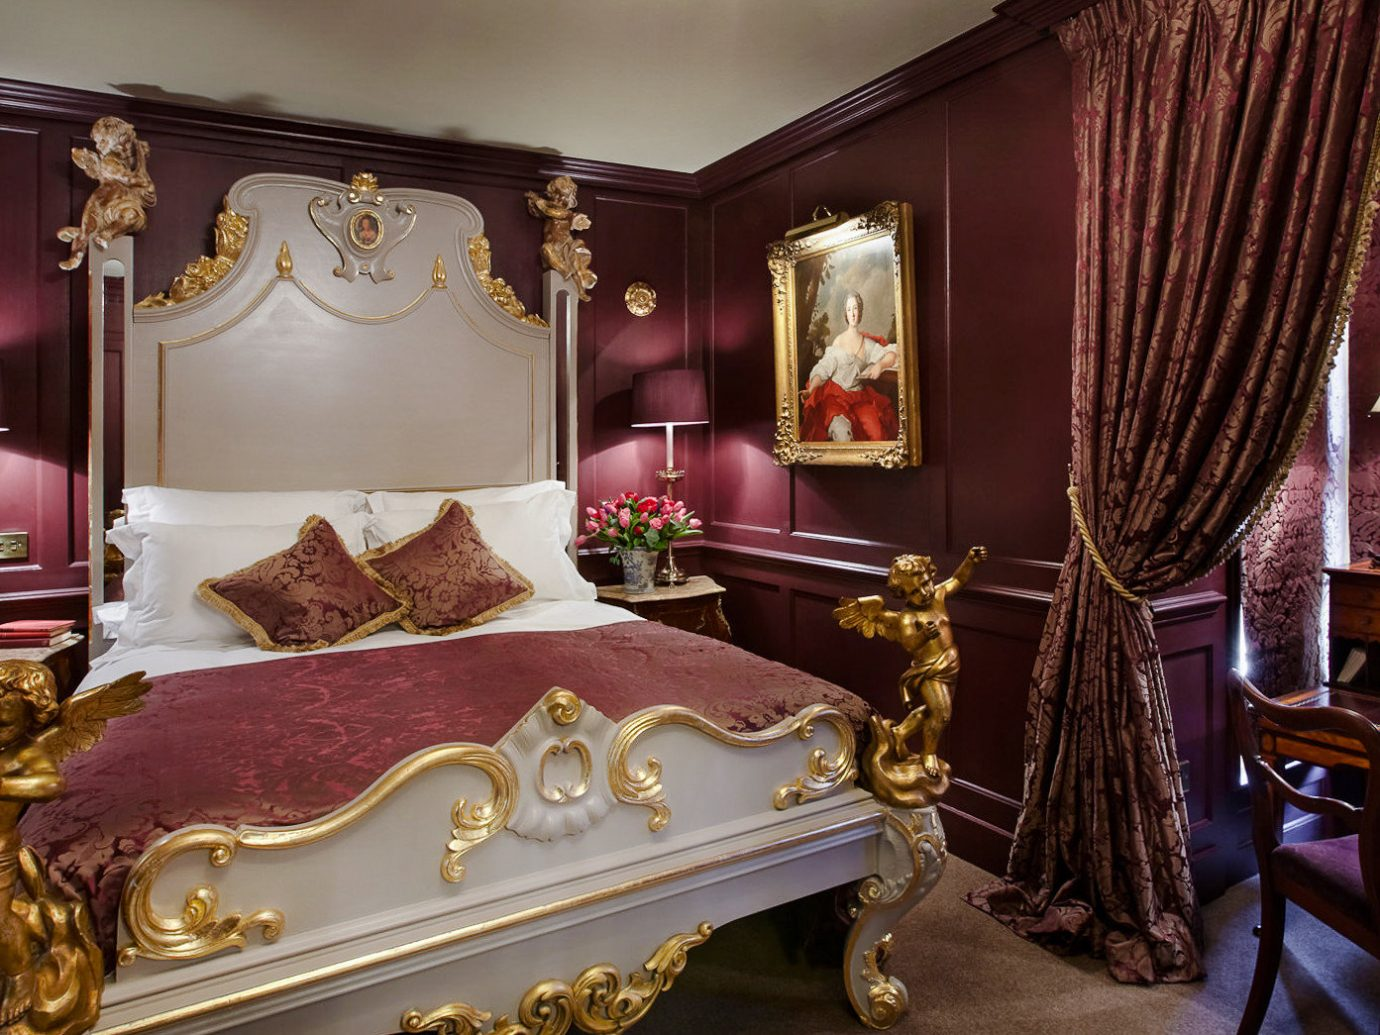 Boutique Hotels London Romantic Hotels room indoor furniture Suite interior design Bedroom home bed Classic estate bed frame bed sheet decorated several